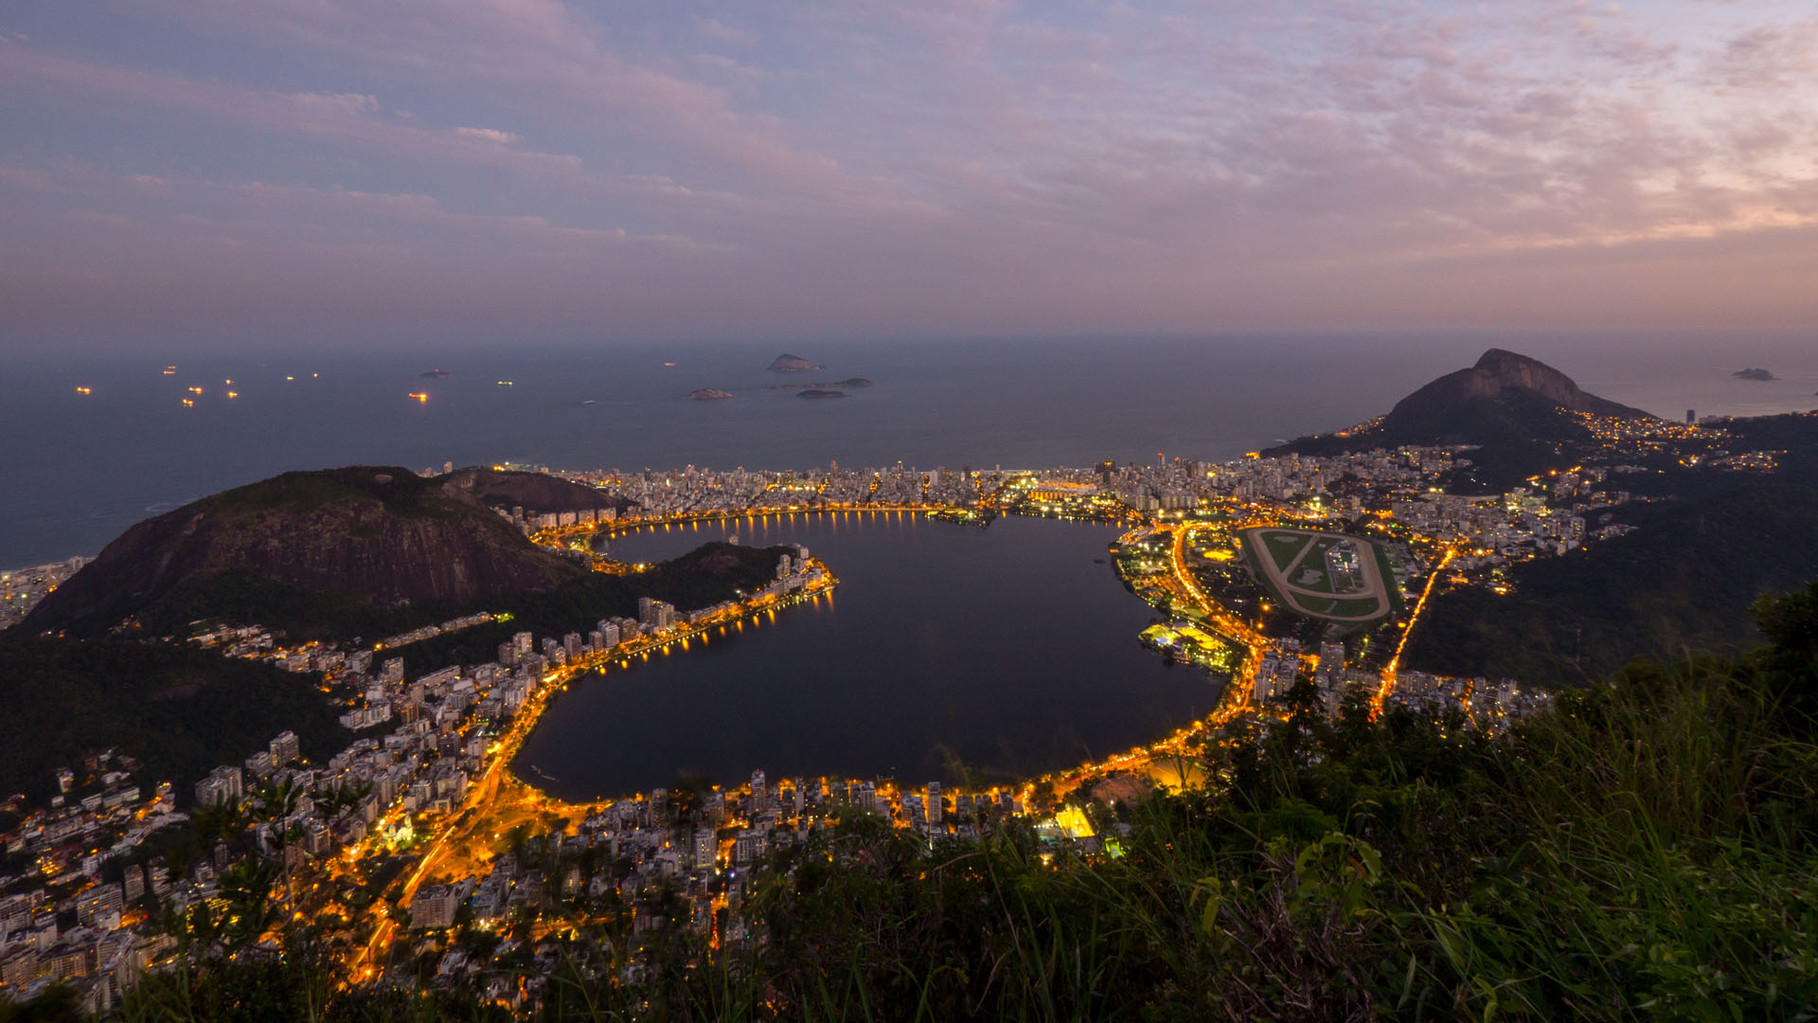 Rio by night, panoramic view from Corcovado